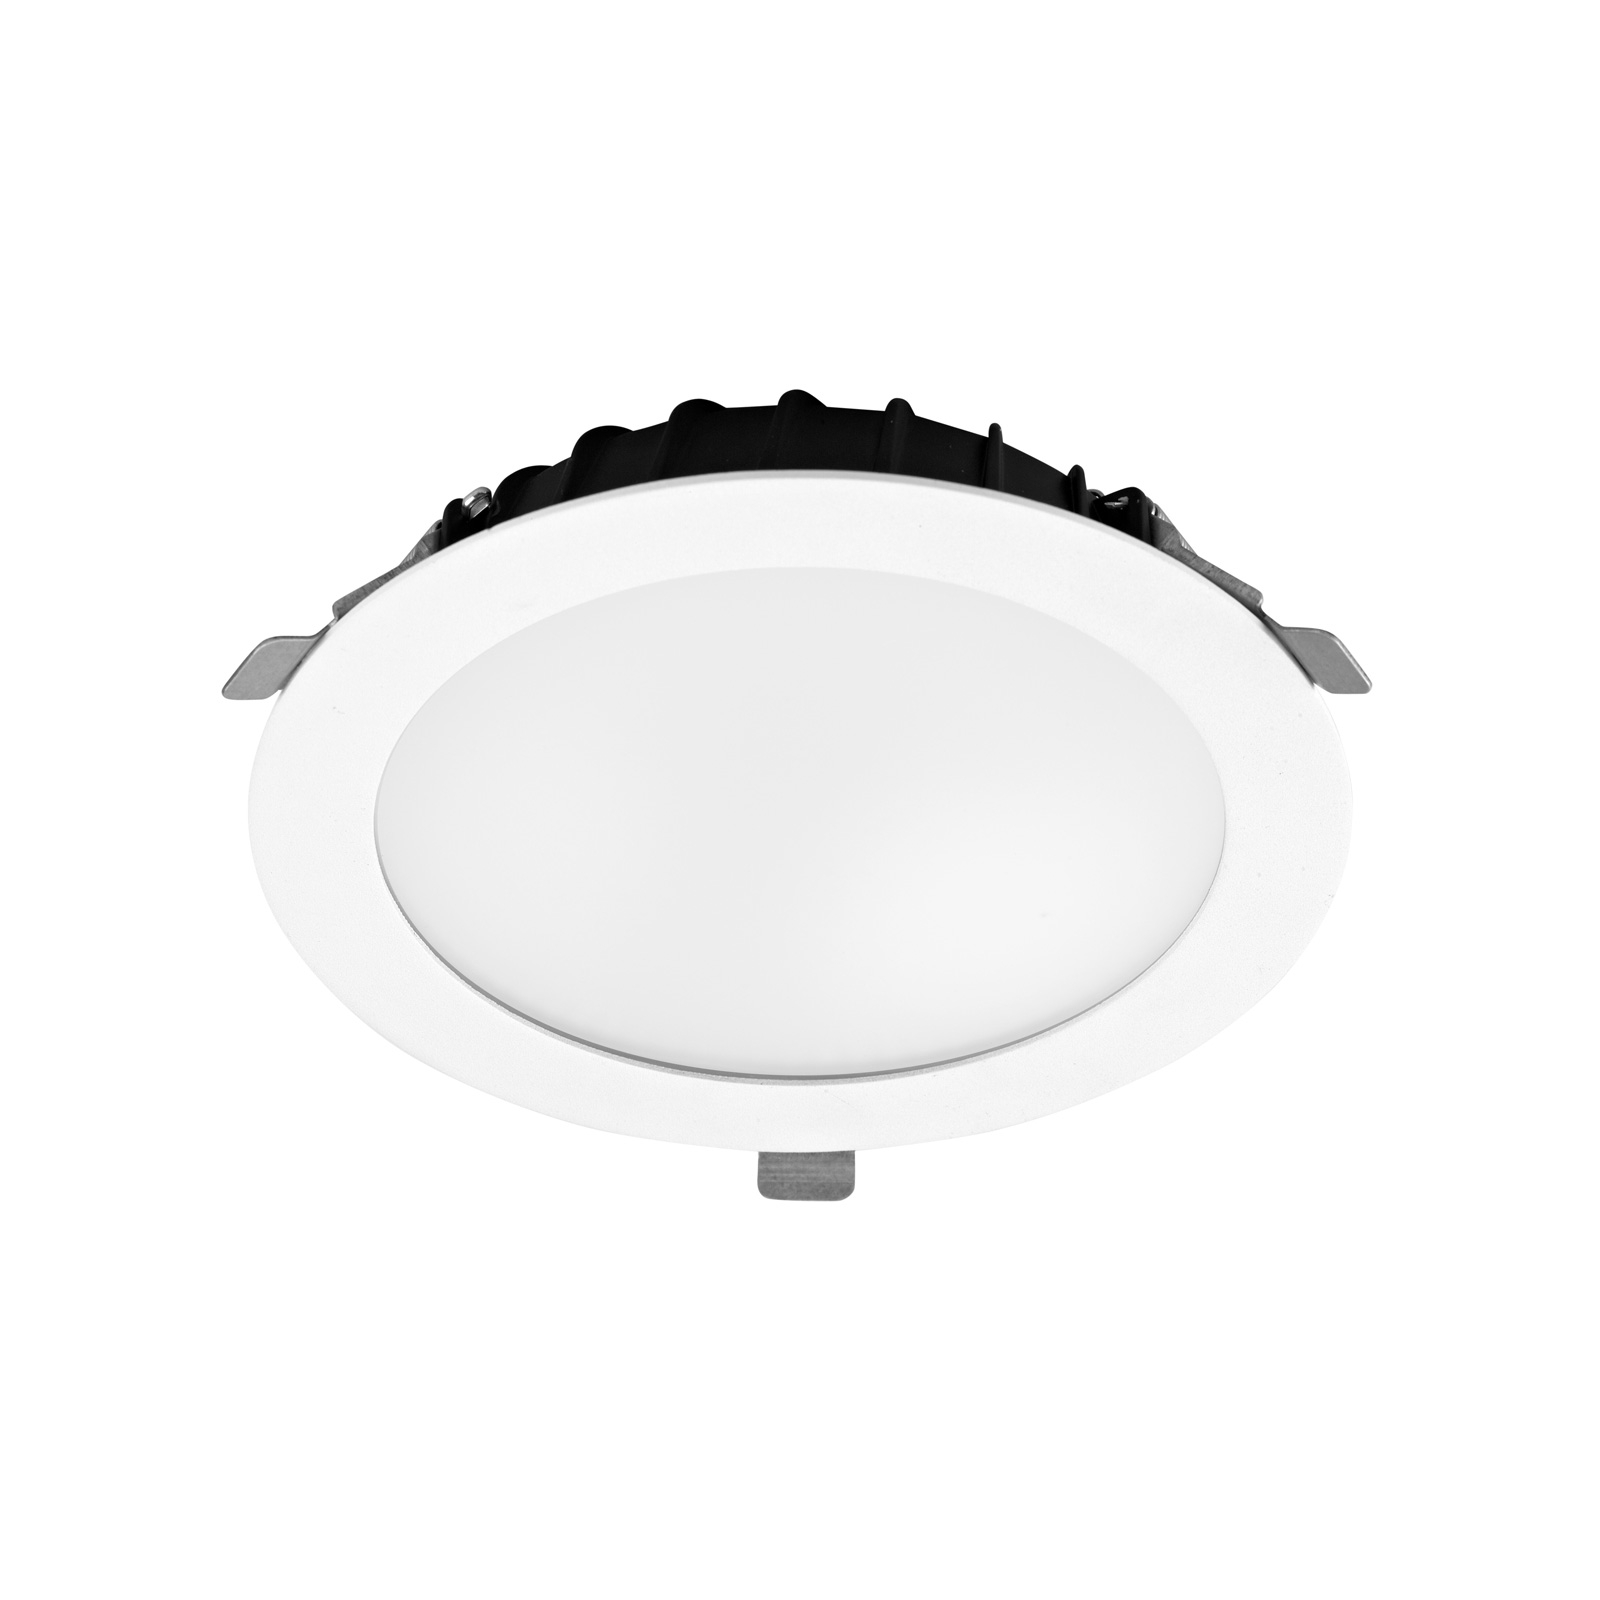 LEDS-C4 Vol downlight Ø 13,4 cm 4 000 K